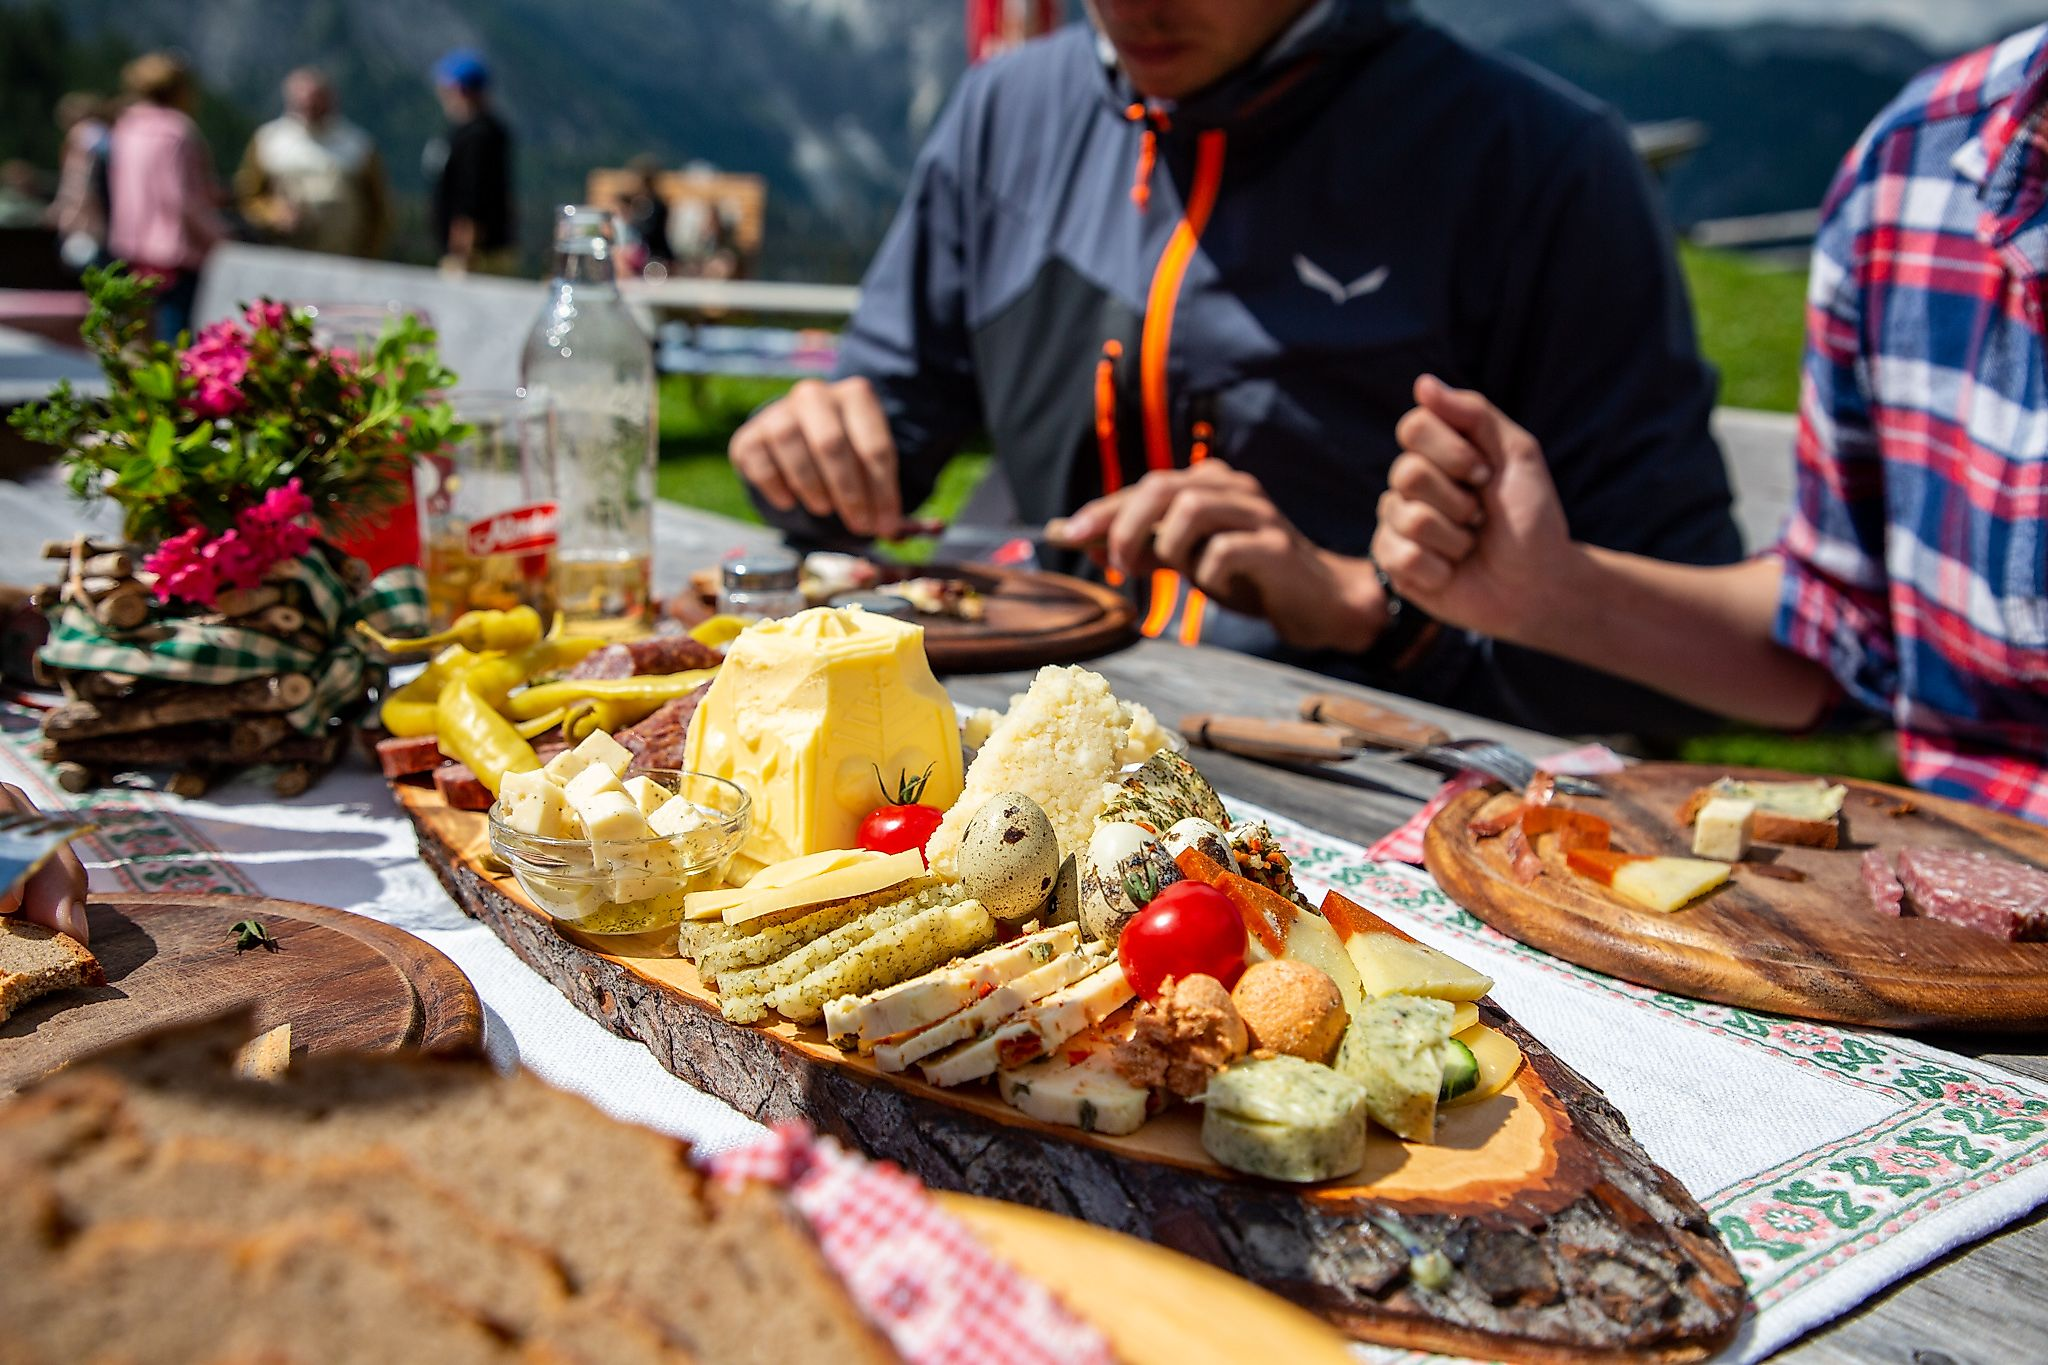 <p>Simply good. The alpine snack with butter, cheese, Spek and fresh bread - that is pure pleasure.</p>